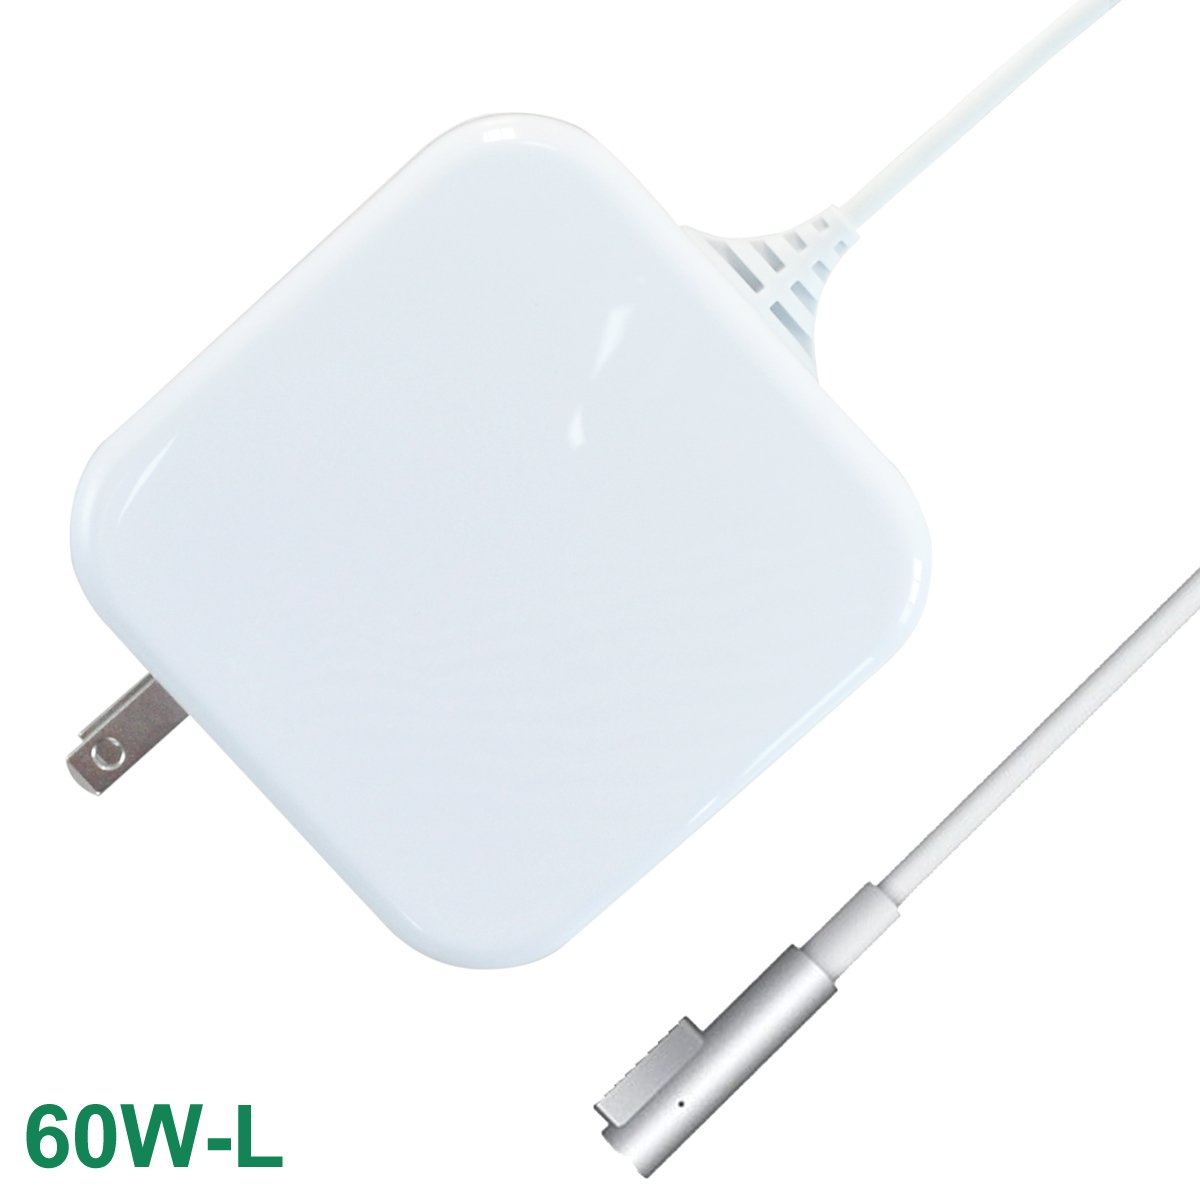 GAID Mac Charger Replacement for MacBook Pro Charger 60W Magsafe1 Power Adapter, Compatible With MacBook Pro 13 inch (2009-Mid 2012) by GAID